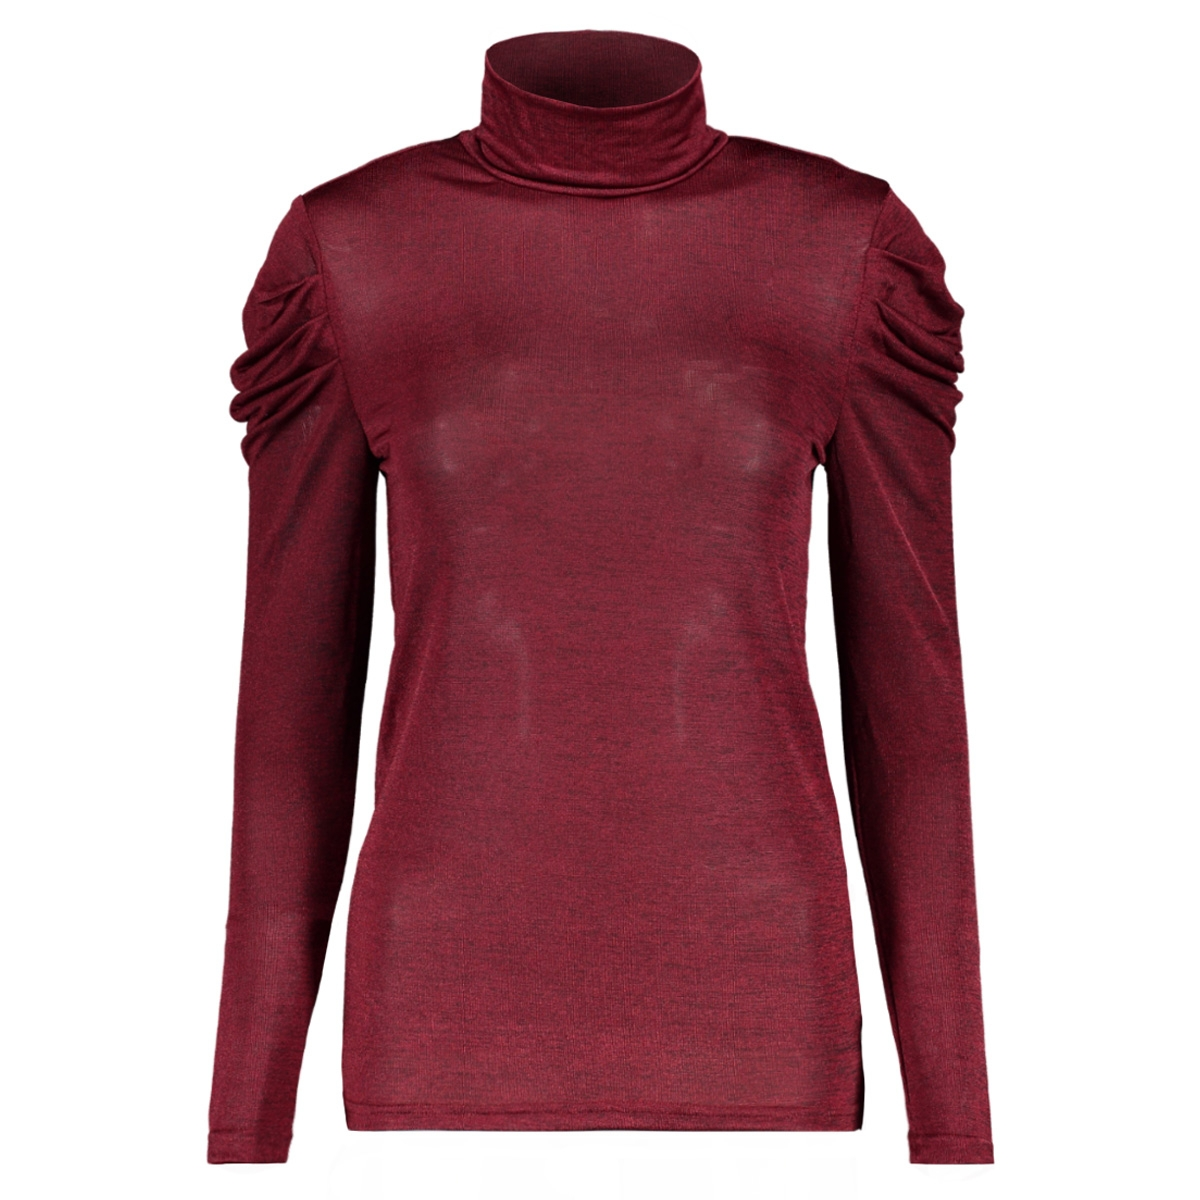 vmterese ls high neck top 10207641 vero moda t-shirt rumba red/melange